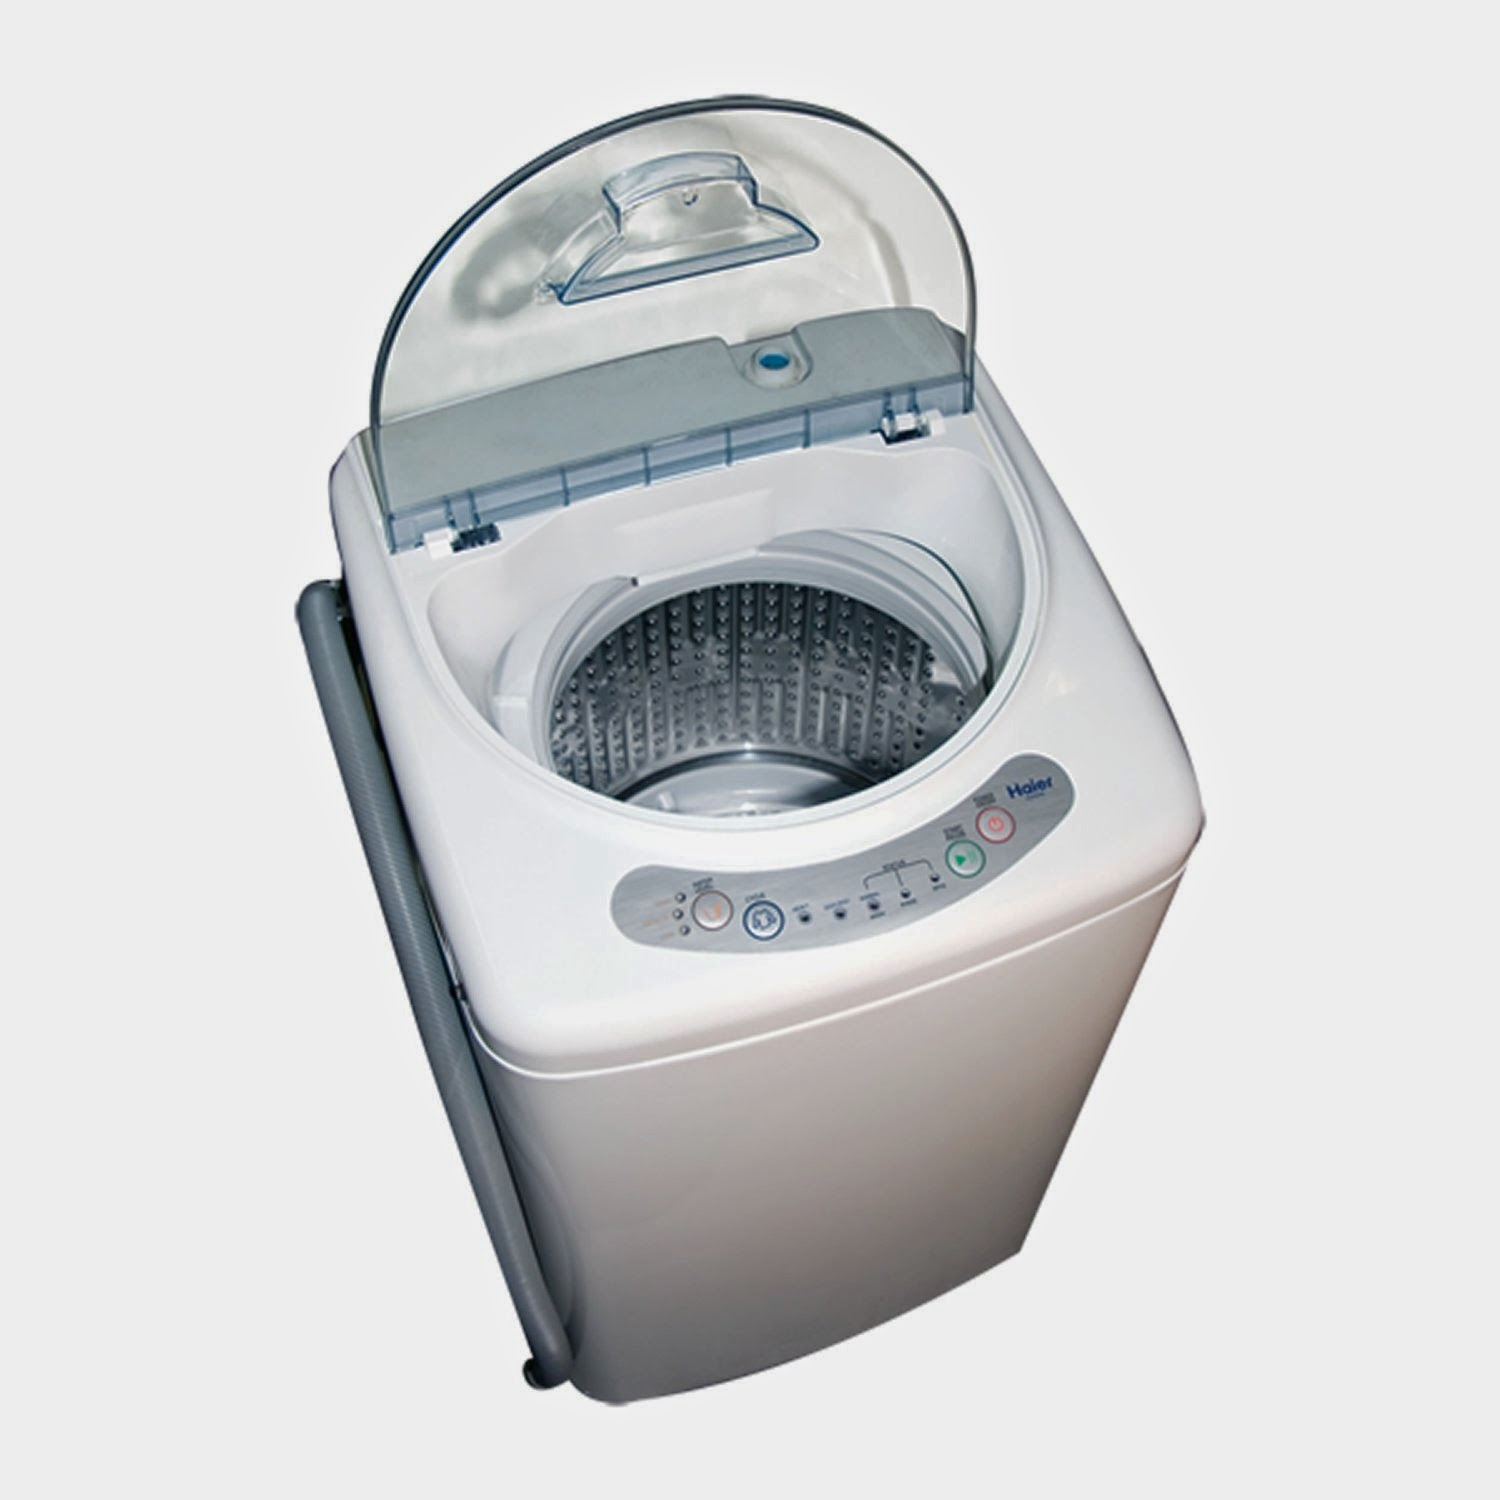 The best top load washer and dryer combo 2015 - Haier Hlp21n Pulsator 1 Cf Portable Washer